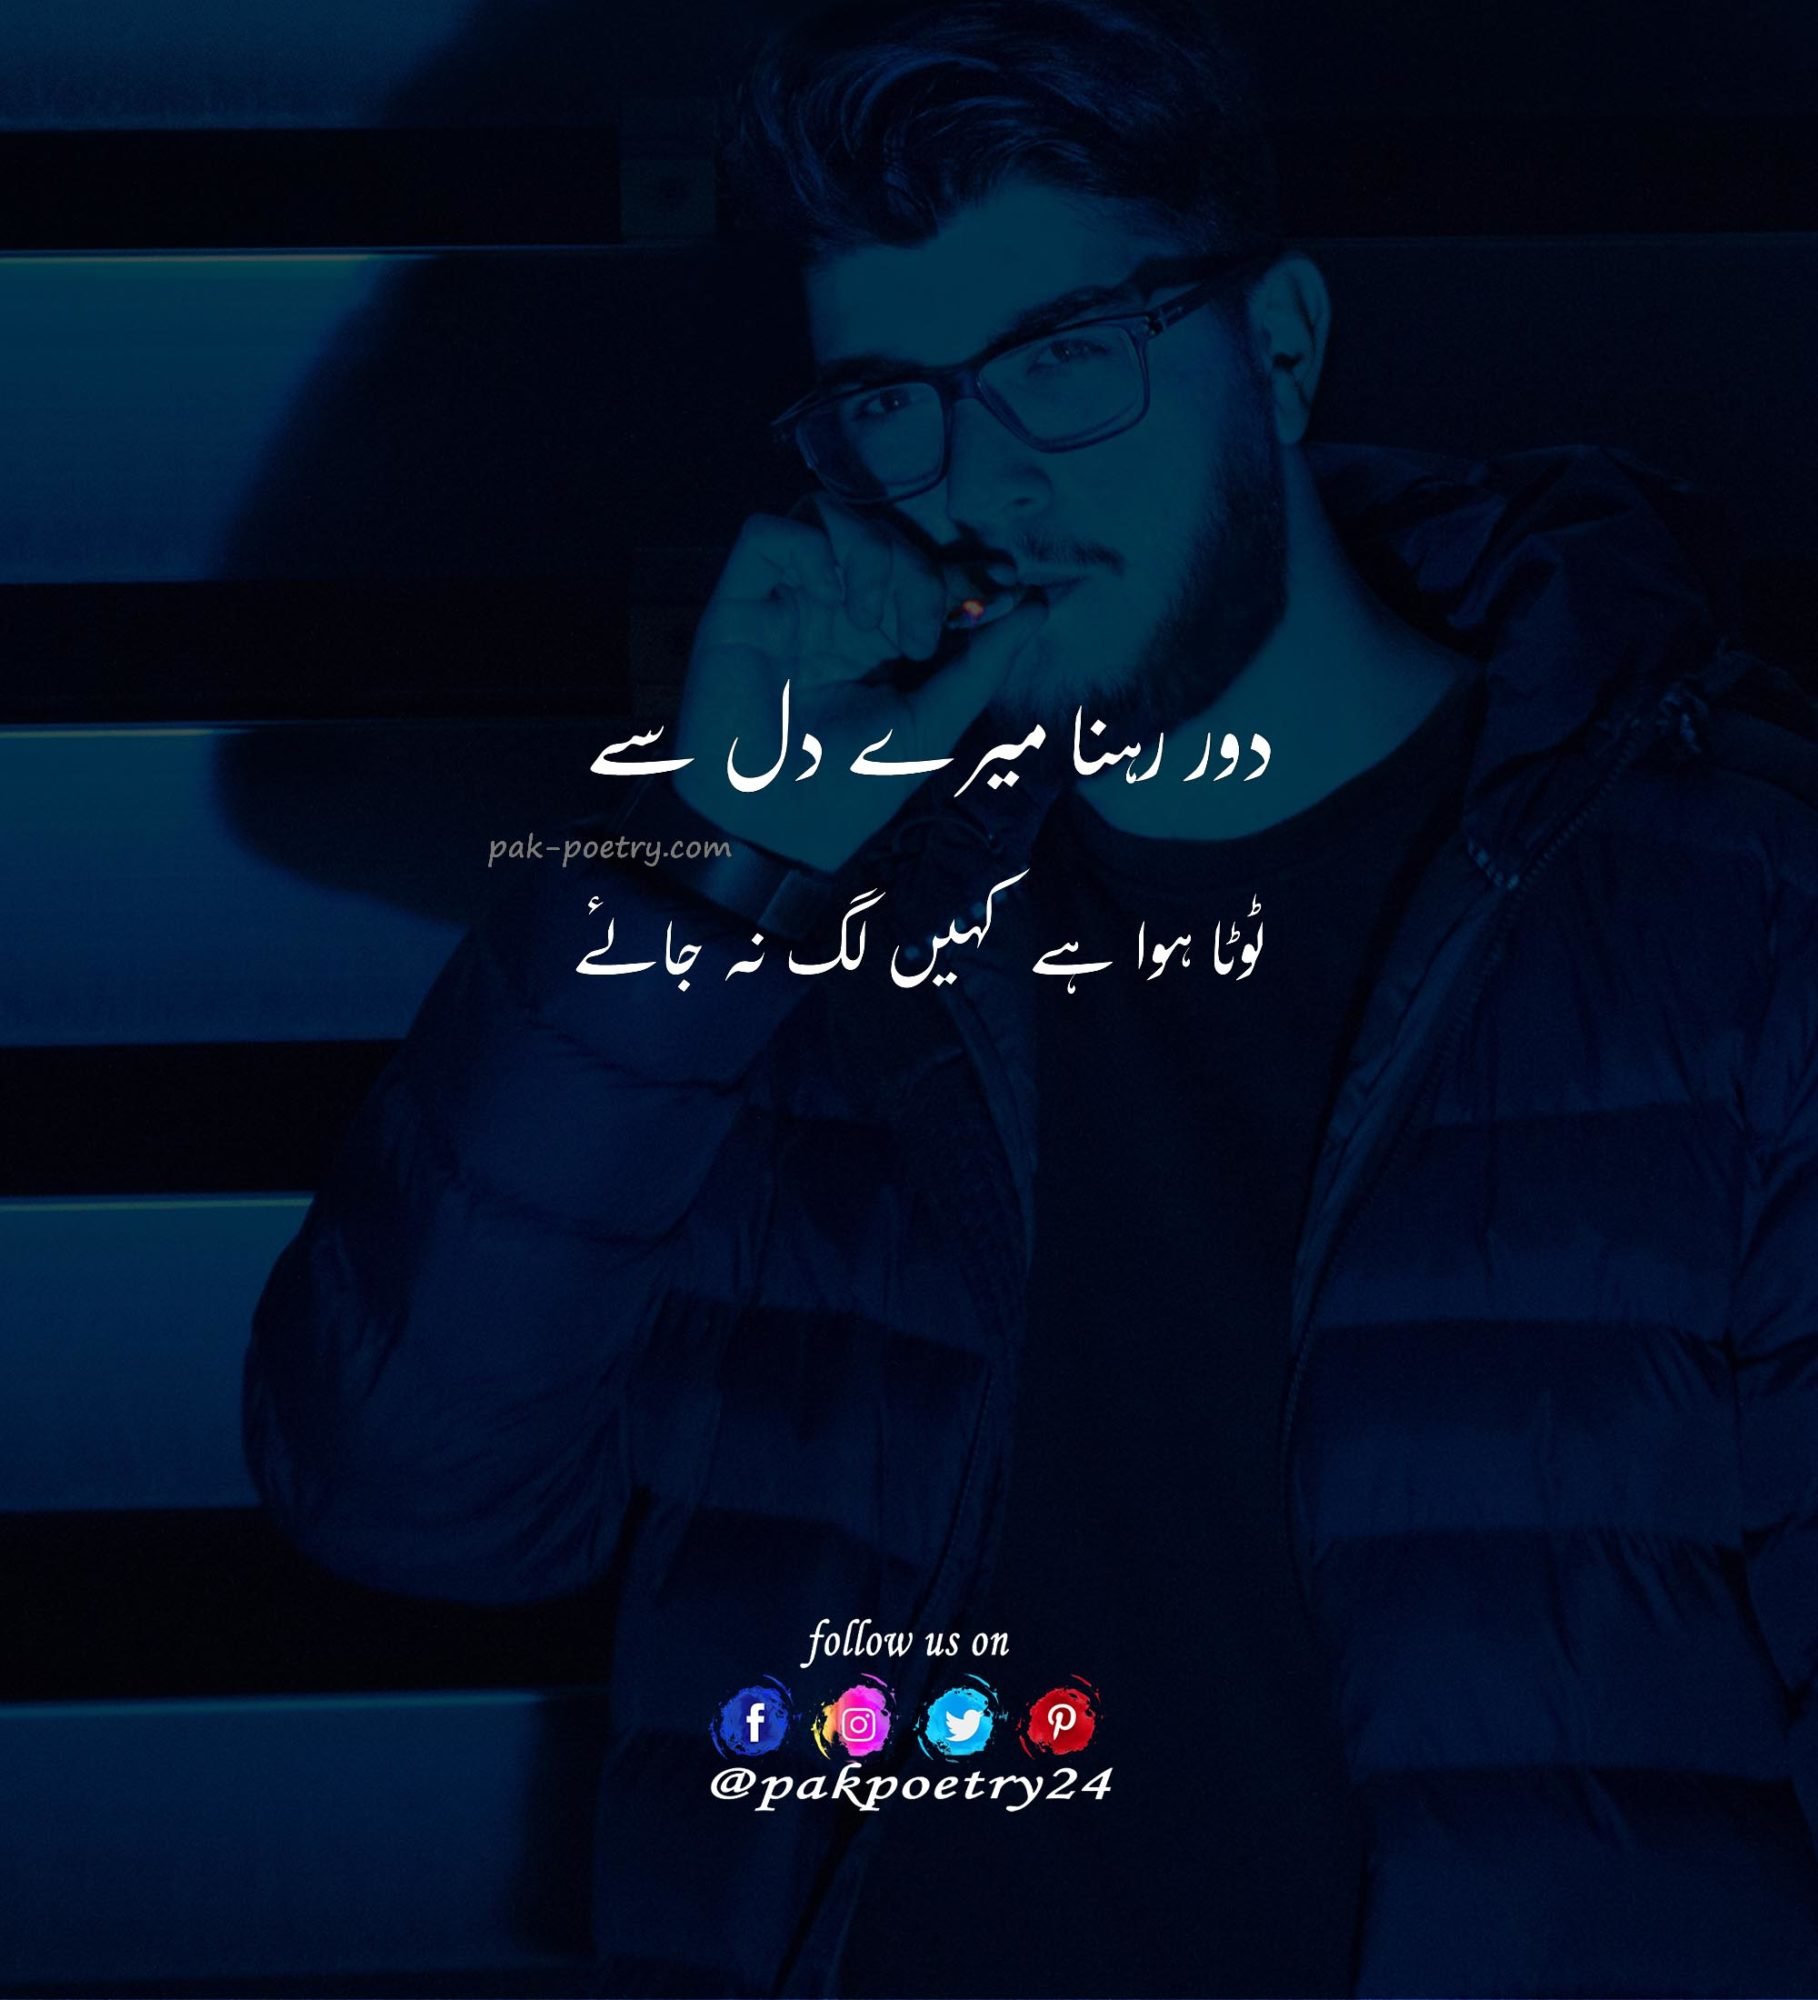 attitude poetry, attitude poetry in urdu, attitude urdu poetry, attitude poetry urdu, poetry, attitude urdu shayari, poetry in urdu attitude, attitude new poetry in urdu, new attitude poetry, punjabi attitude poetry, poetry attitude, urdu poetry attitude, poetry urdu attitude, urdu shayari attitude, poetry attitude urdu, atitude poetry, urdu poetry on attitude, urdu poetry, poetry in urdu, poetry urdu, poetry, urdu shayari, potry in urdu, baat poetry, poetry.in.urdu, urdu poetry pic, poetry into urdu, urdu. poetry, porty urdu, urdu pietry,